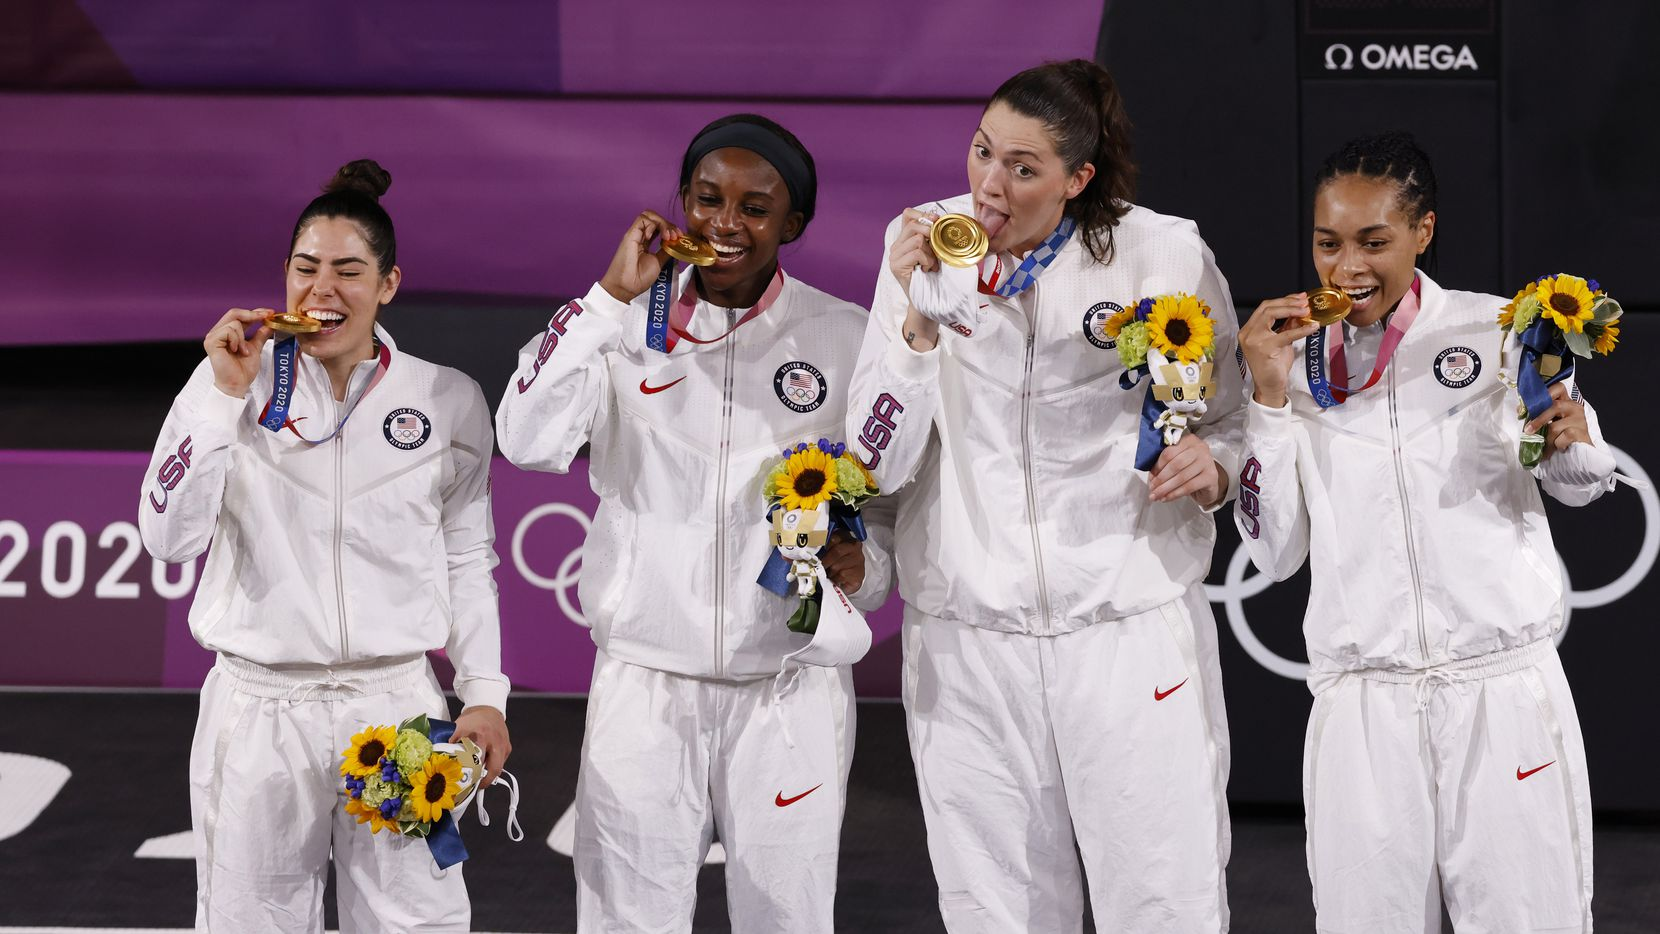 USA's Kelsey Plum (5), Jacquelyn Young (8), Stefanie Dolson (13), and Allisha Gray (15) pose for photos during the medal ceremony for the 3x3 women's basketball final at the postponed 2020 Tokyo Olympics at the Tokyo Aomi Urban Sports Park on Wednesday, July 28, 2021, in Tokyo, Japan.